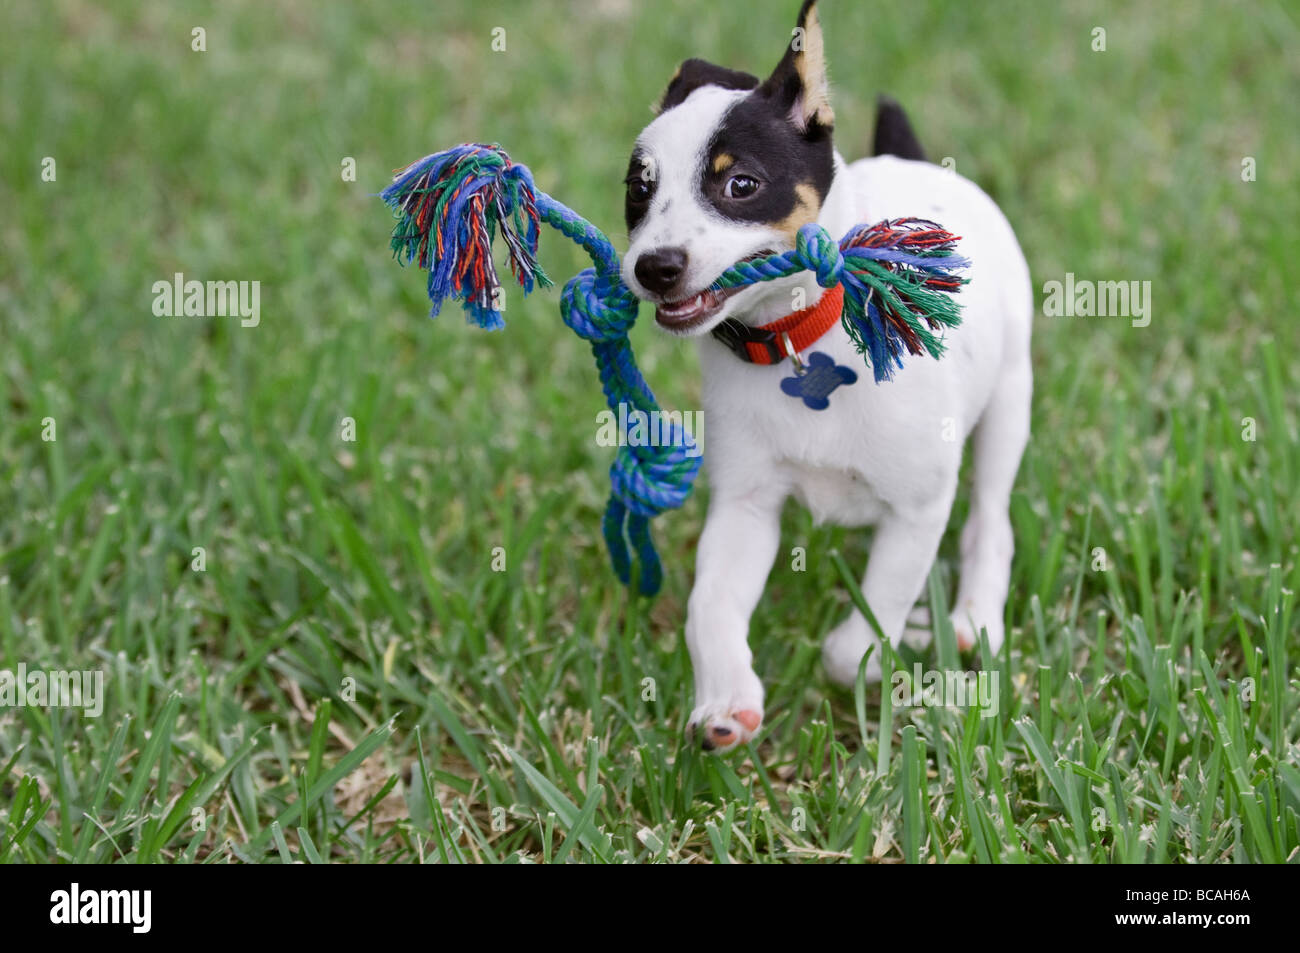 rat terrier puppy fetching rope toy - Stock Image